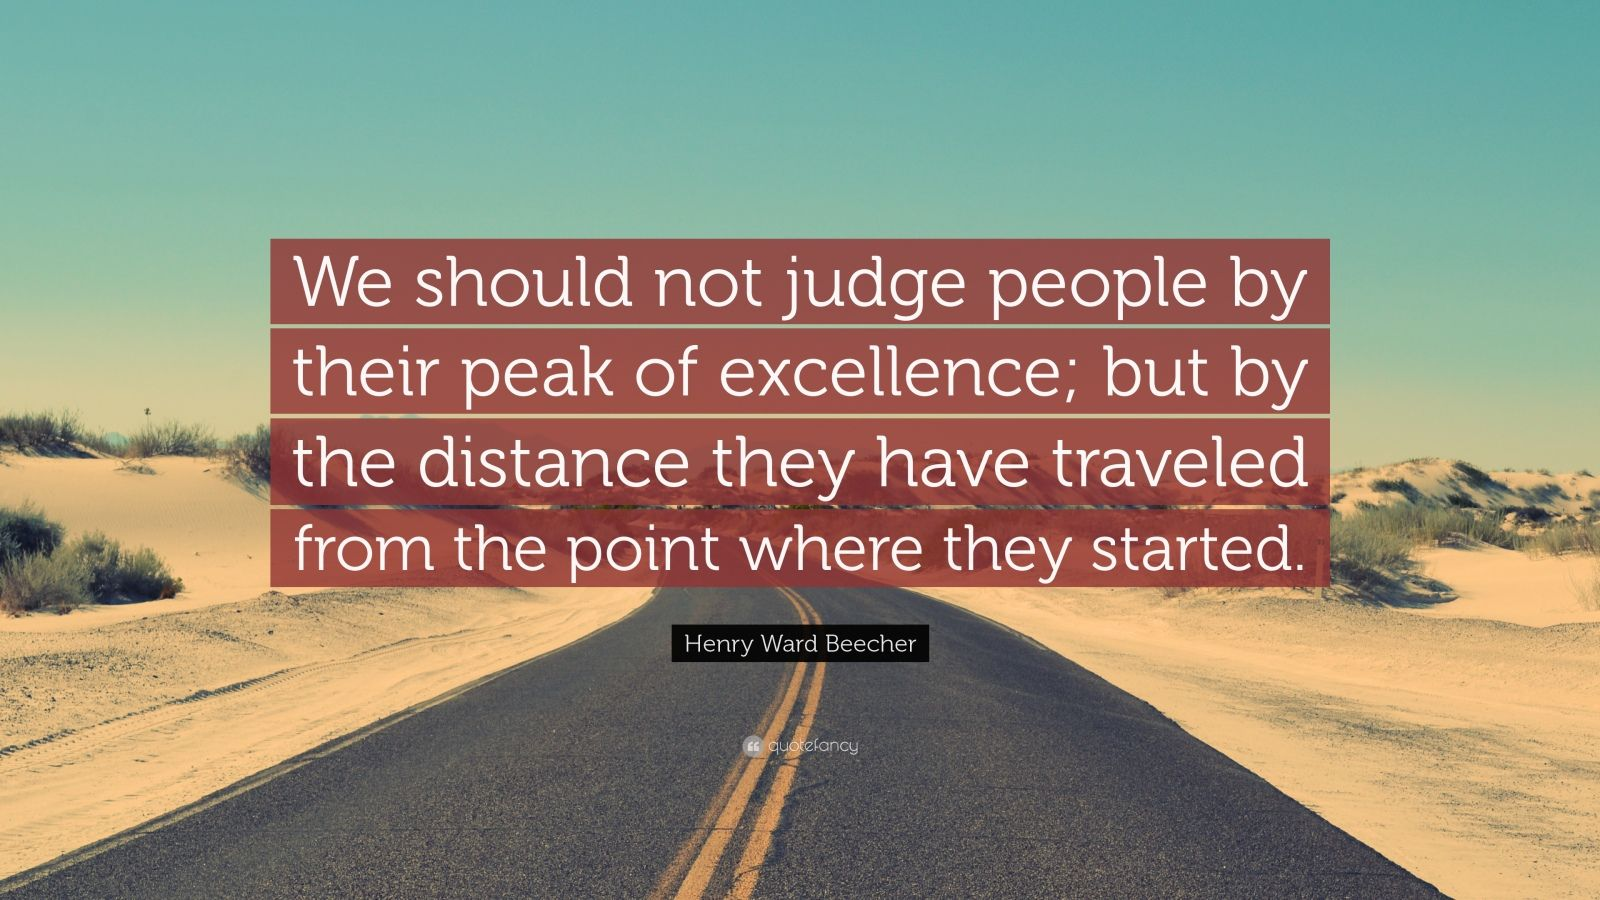 """Henry Ward Beecher Quote: """"We should not judge people by their peak of excellence; but by the distance they have traveled from the point where they started."""""""